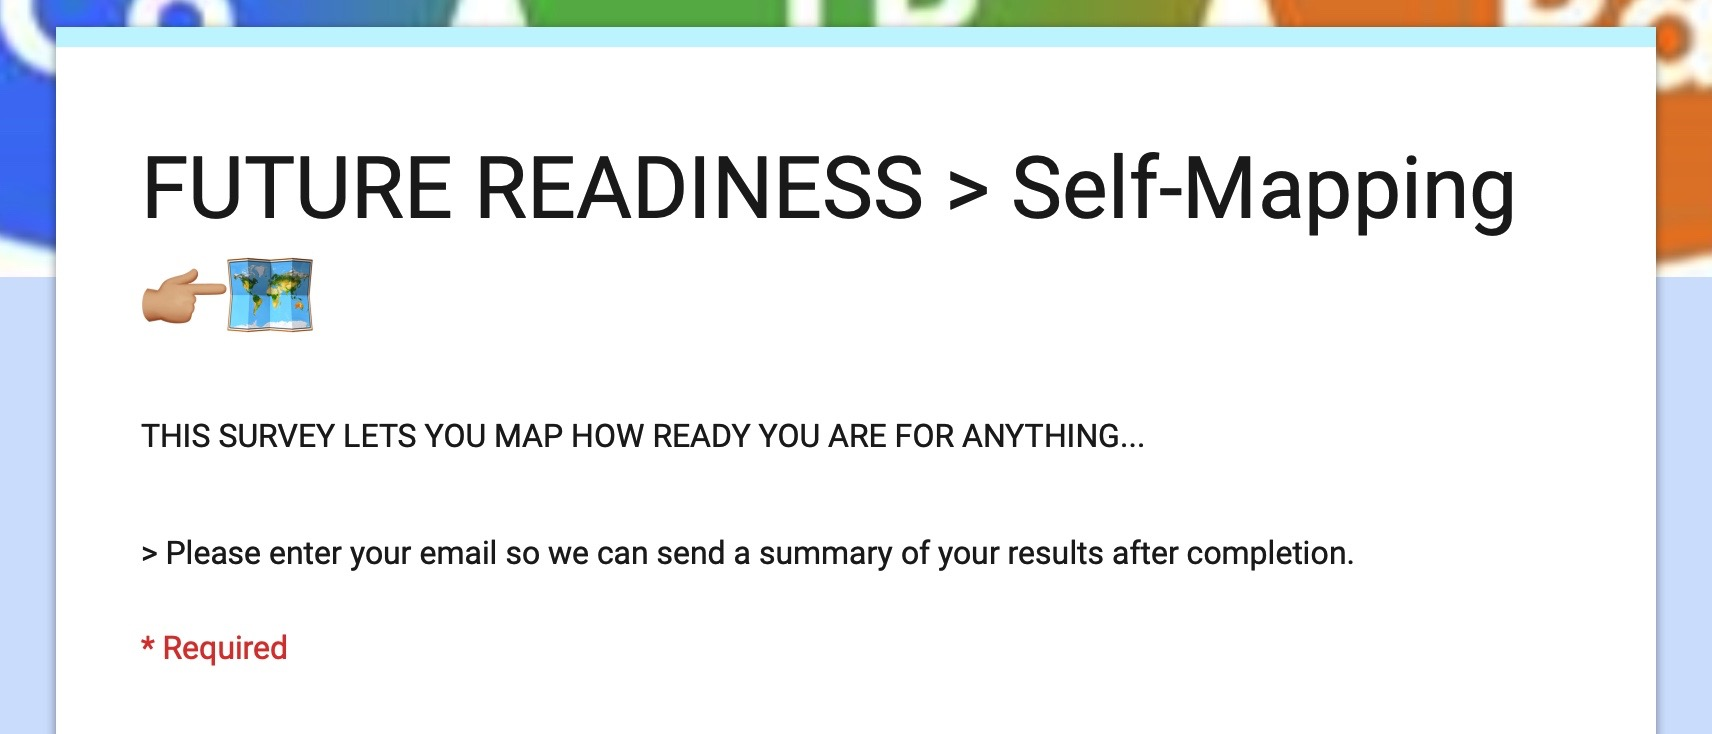 Future Readiness self-mapping survey: -